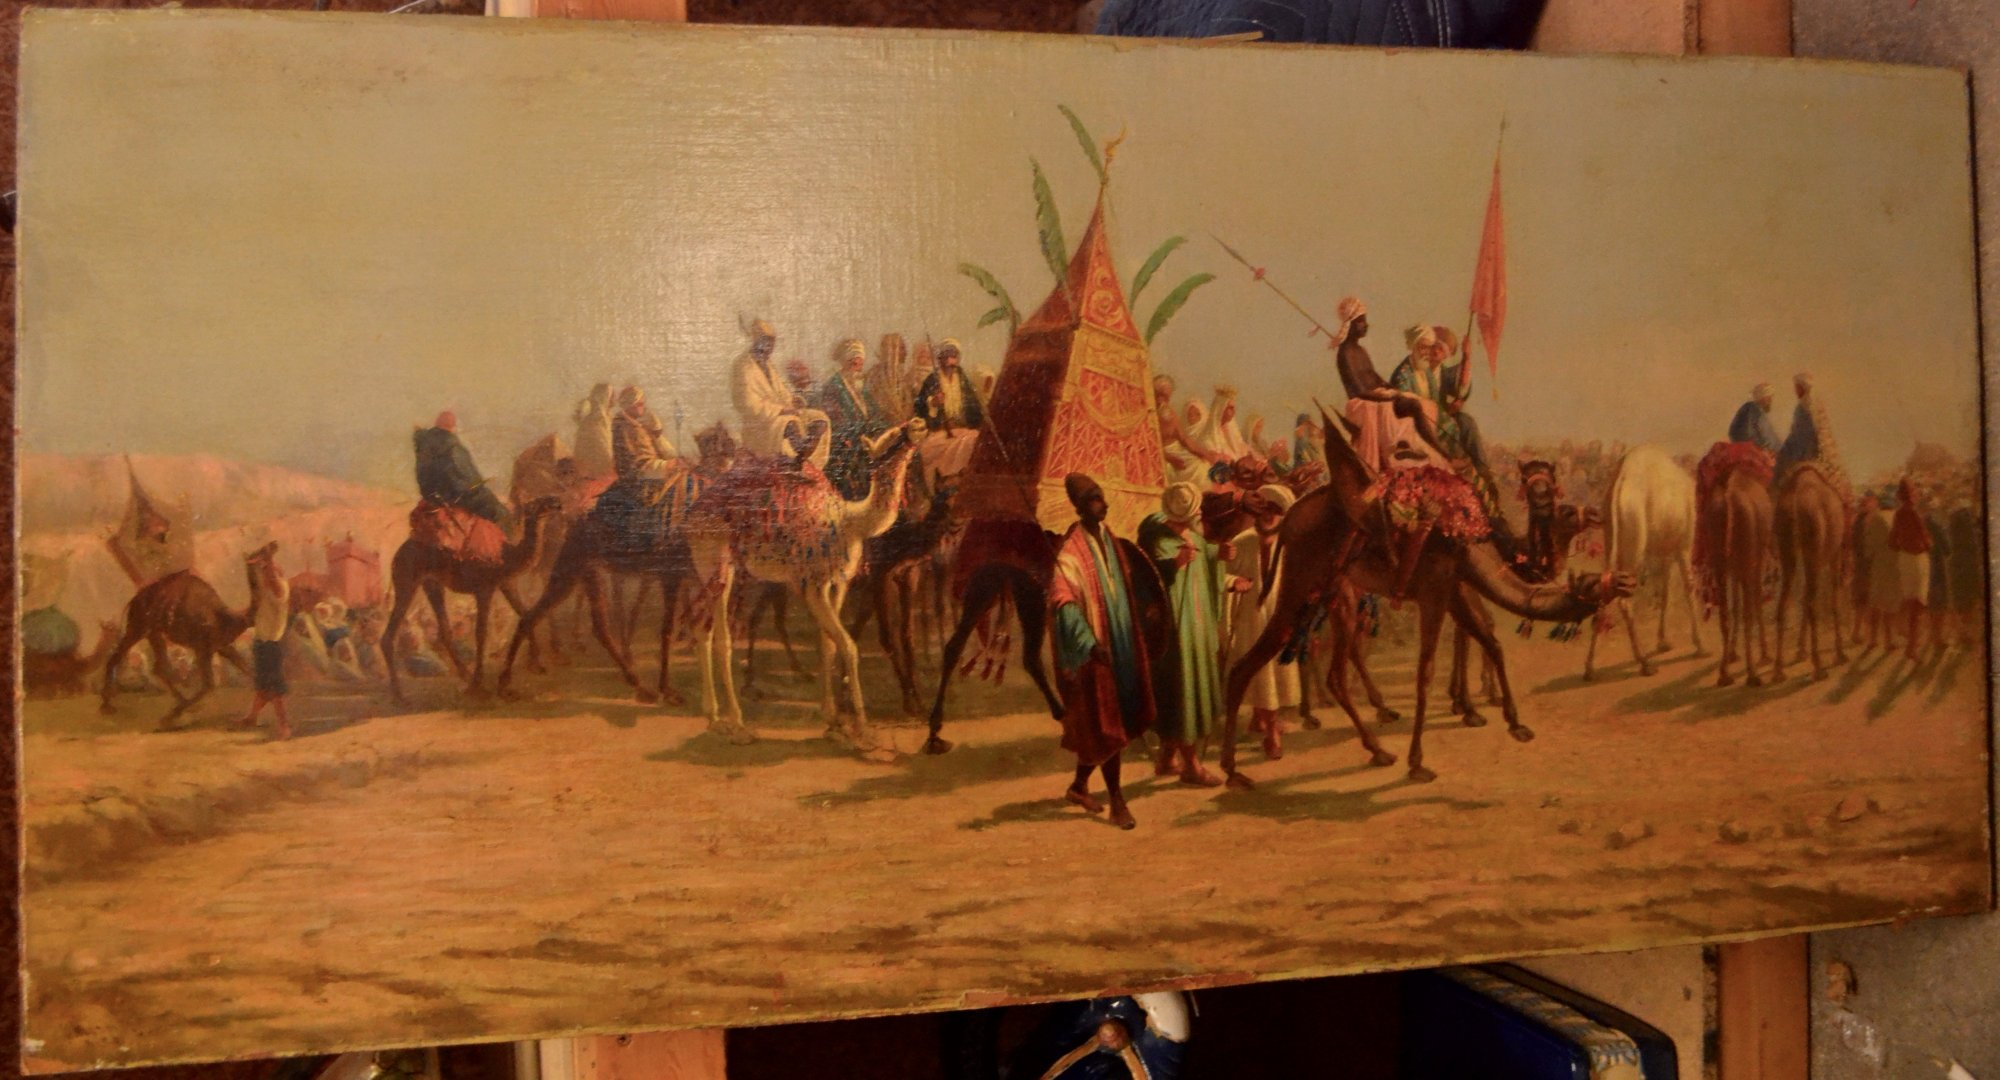 19th Century Persian painting on wood